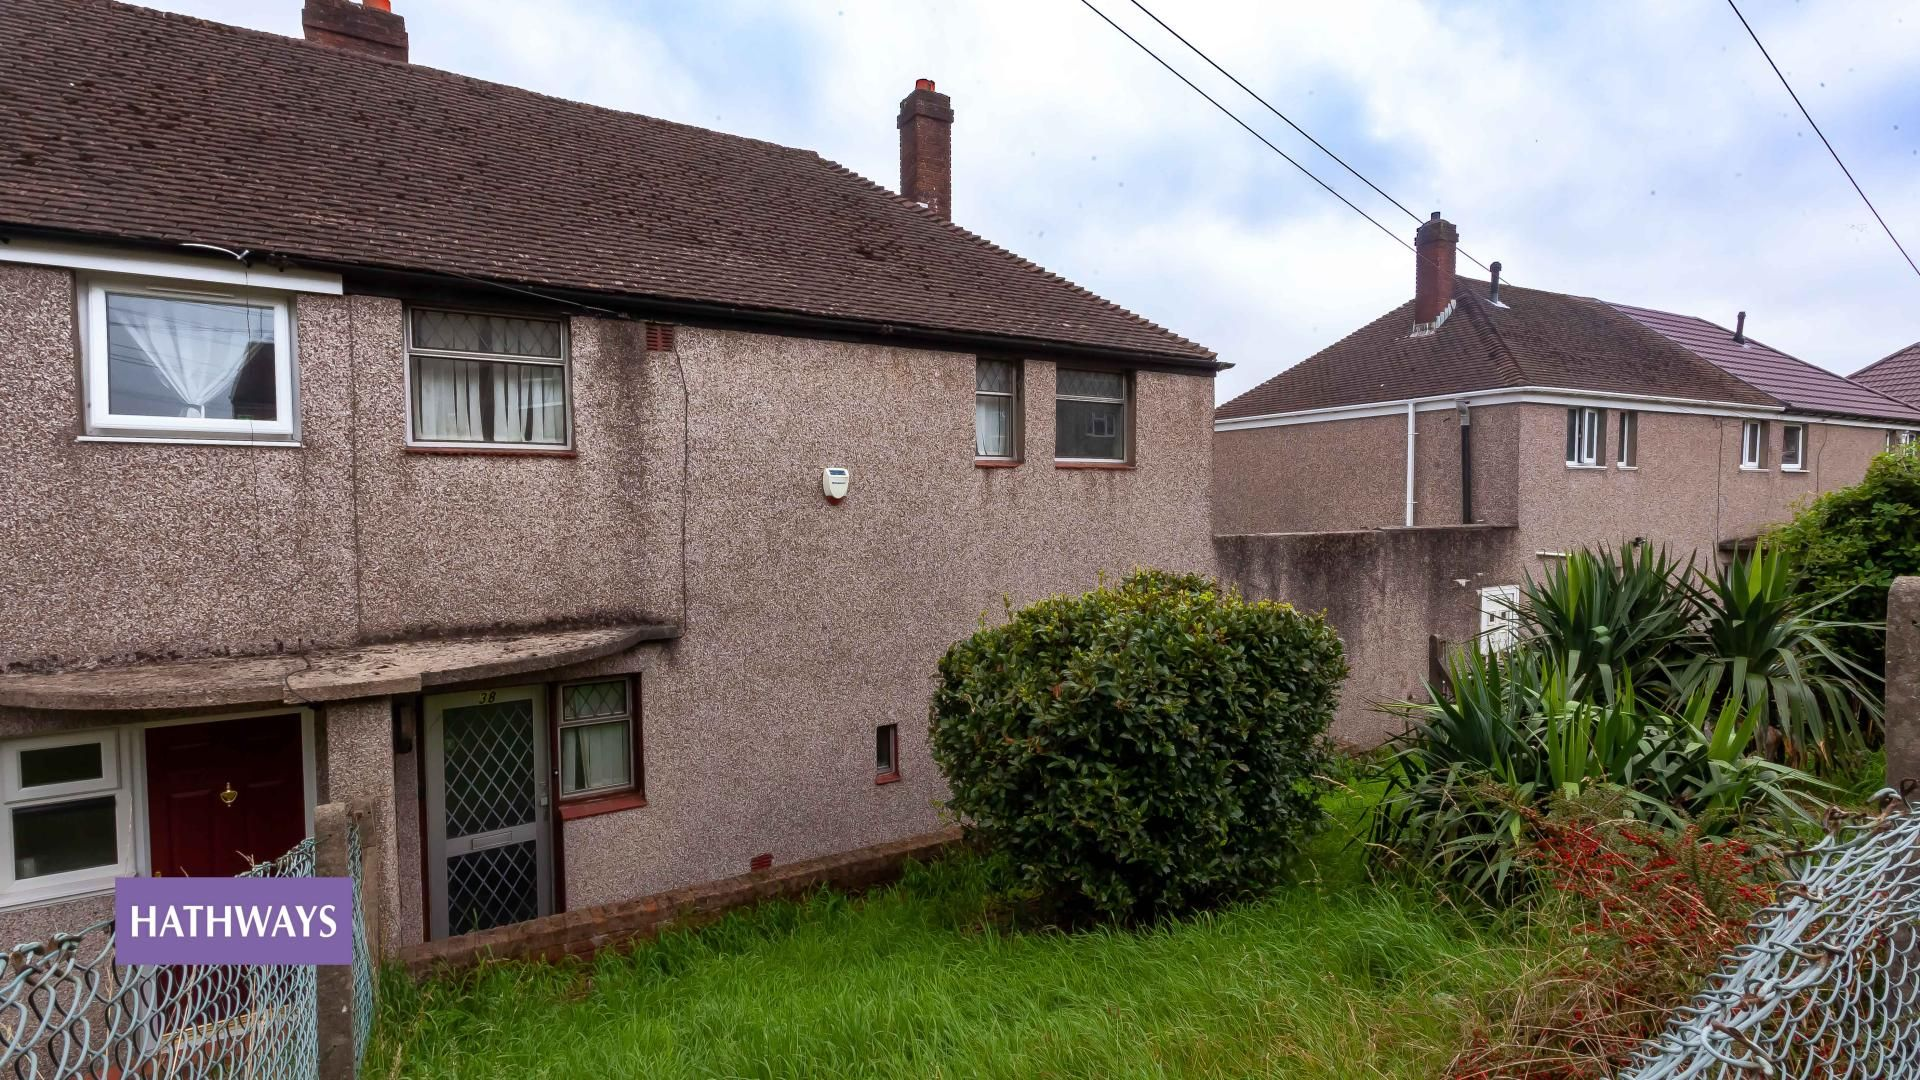 3 bed house for sale in Upland Drive, NP4